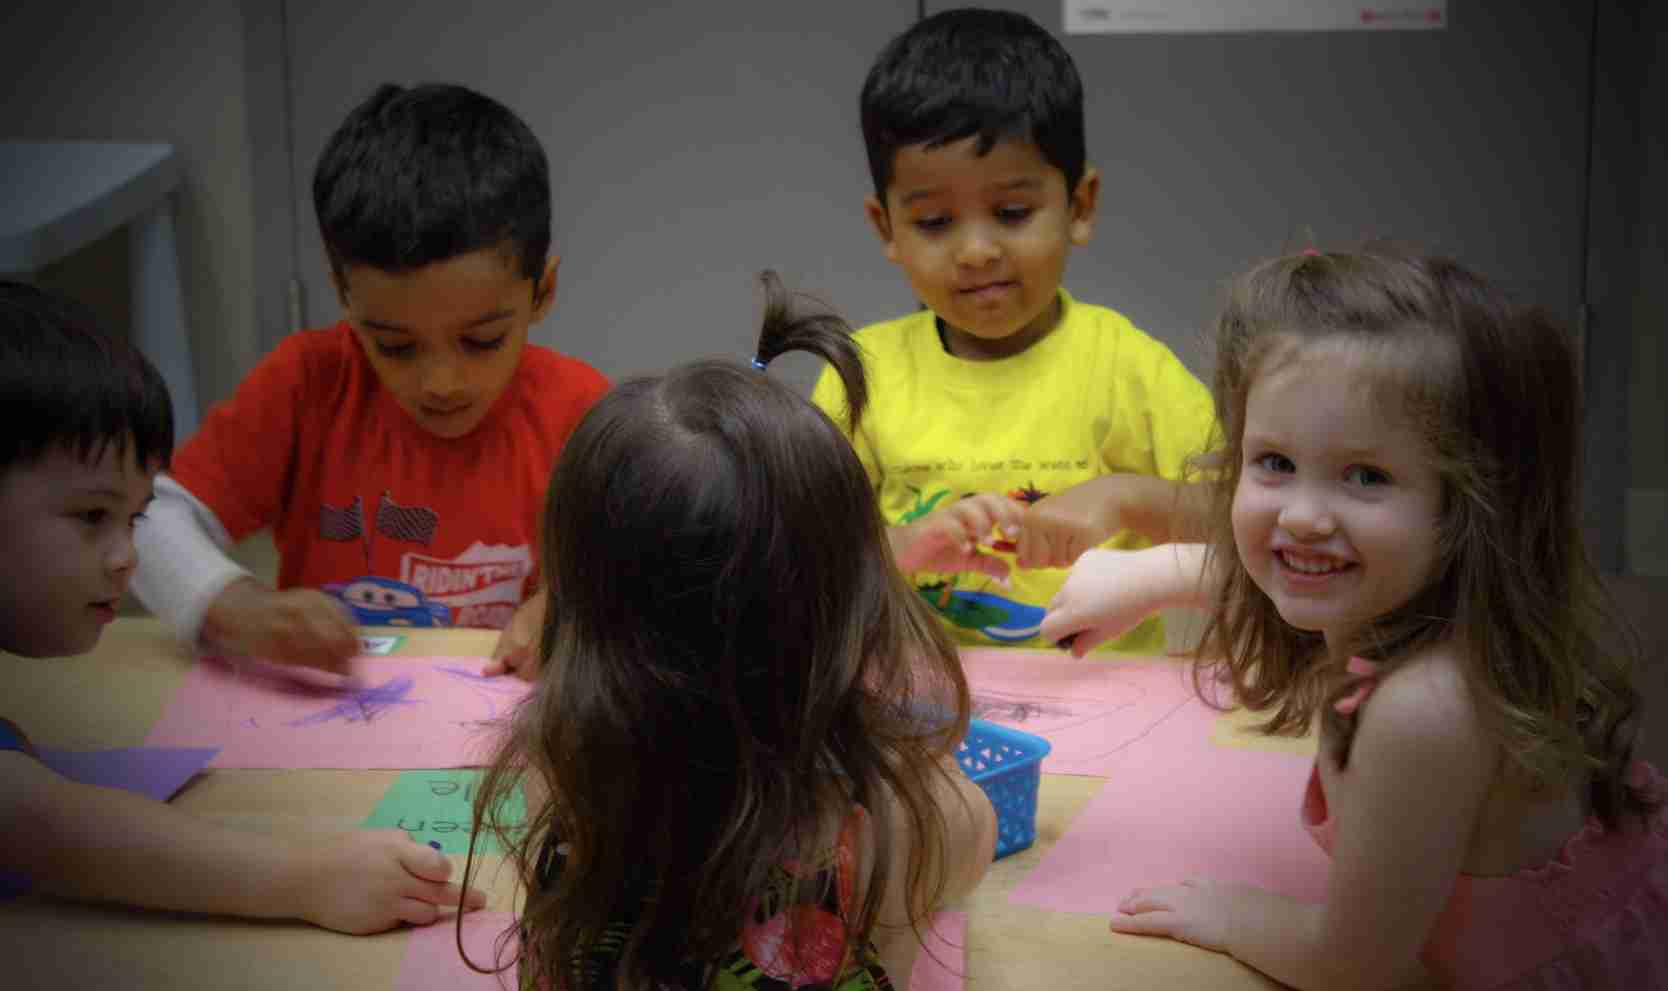 Children coloring pink paper sheets on a table